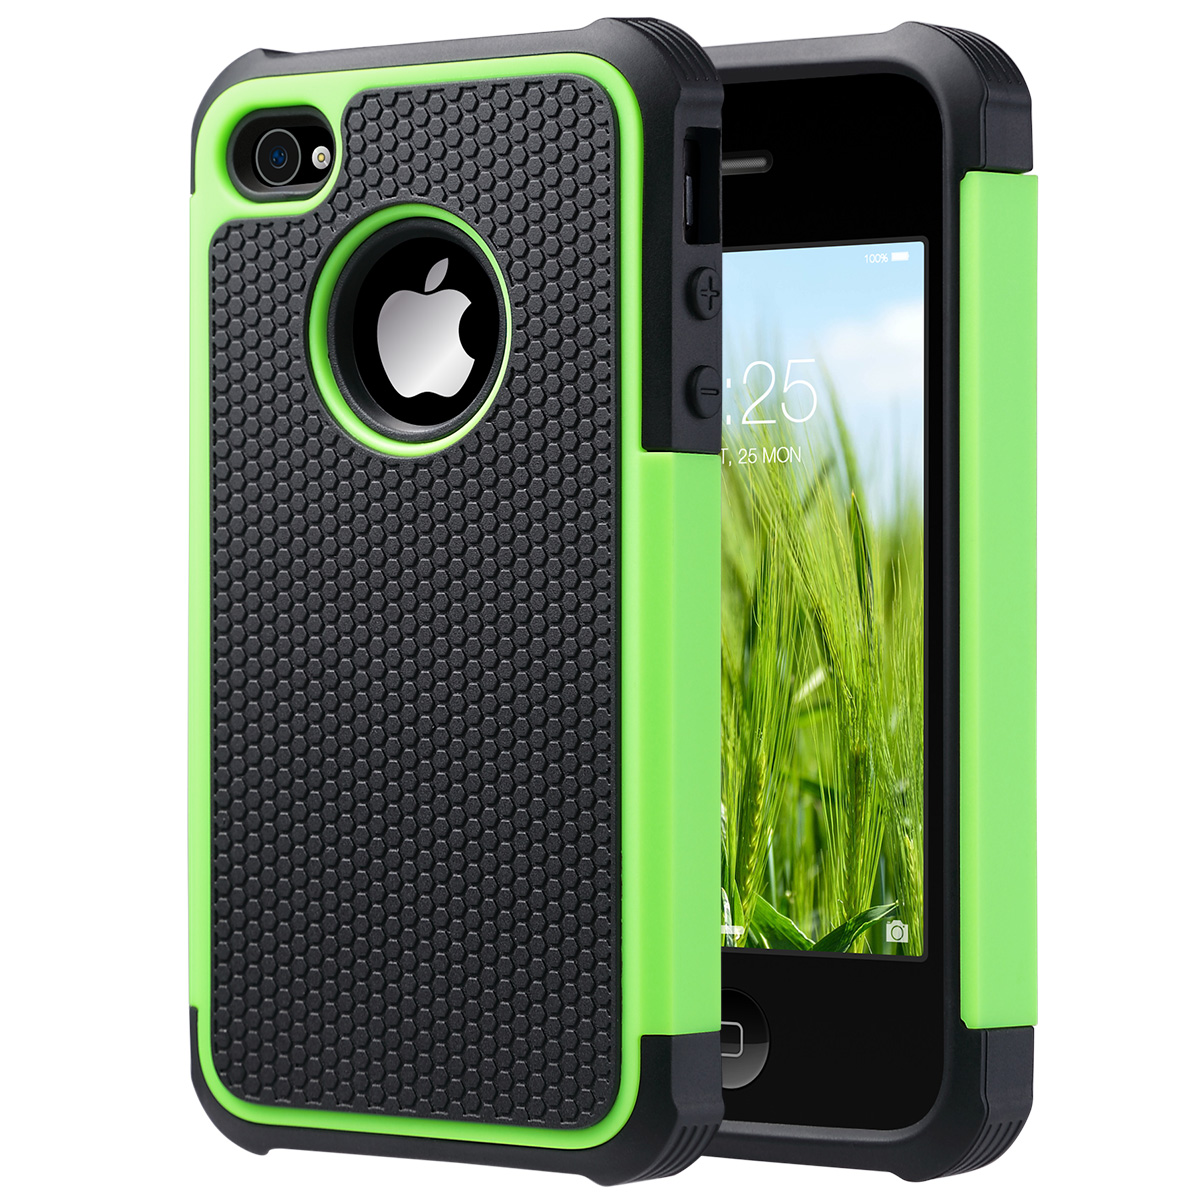 The Use of the Dual-Layered Protective iPhone Case